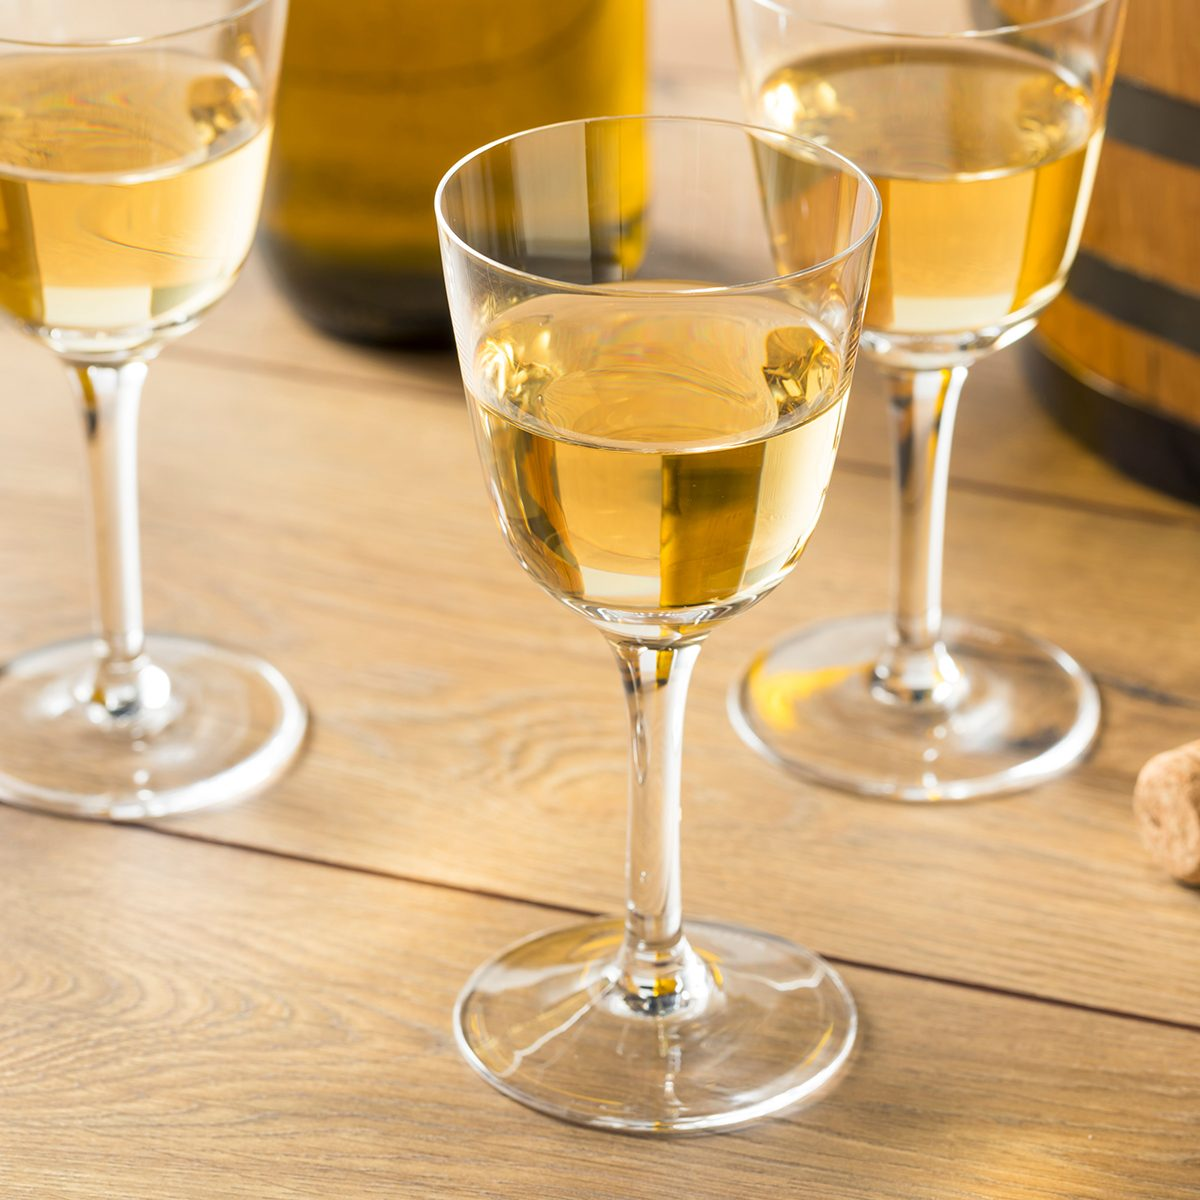 Dry French Sherry Dessert Wine in a Glass